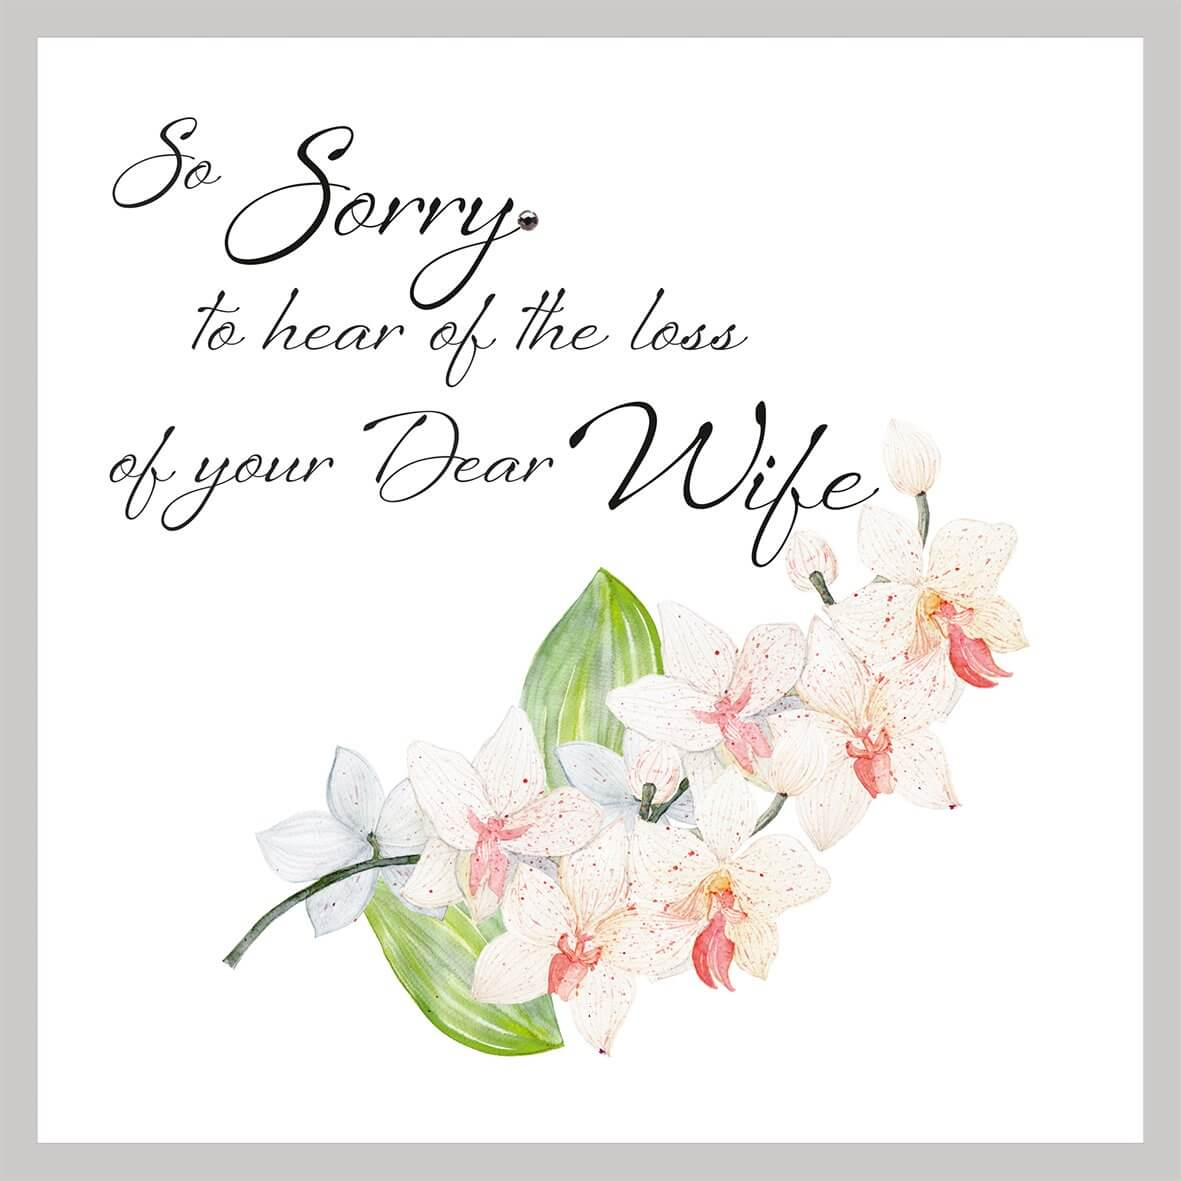 So Sorry To Hear The Loss Of Your Dear Wife Wow Vow